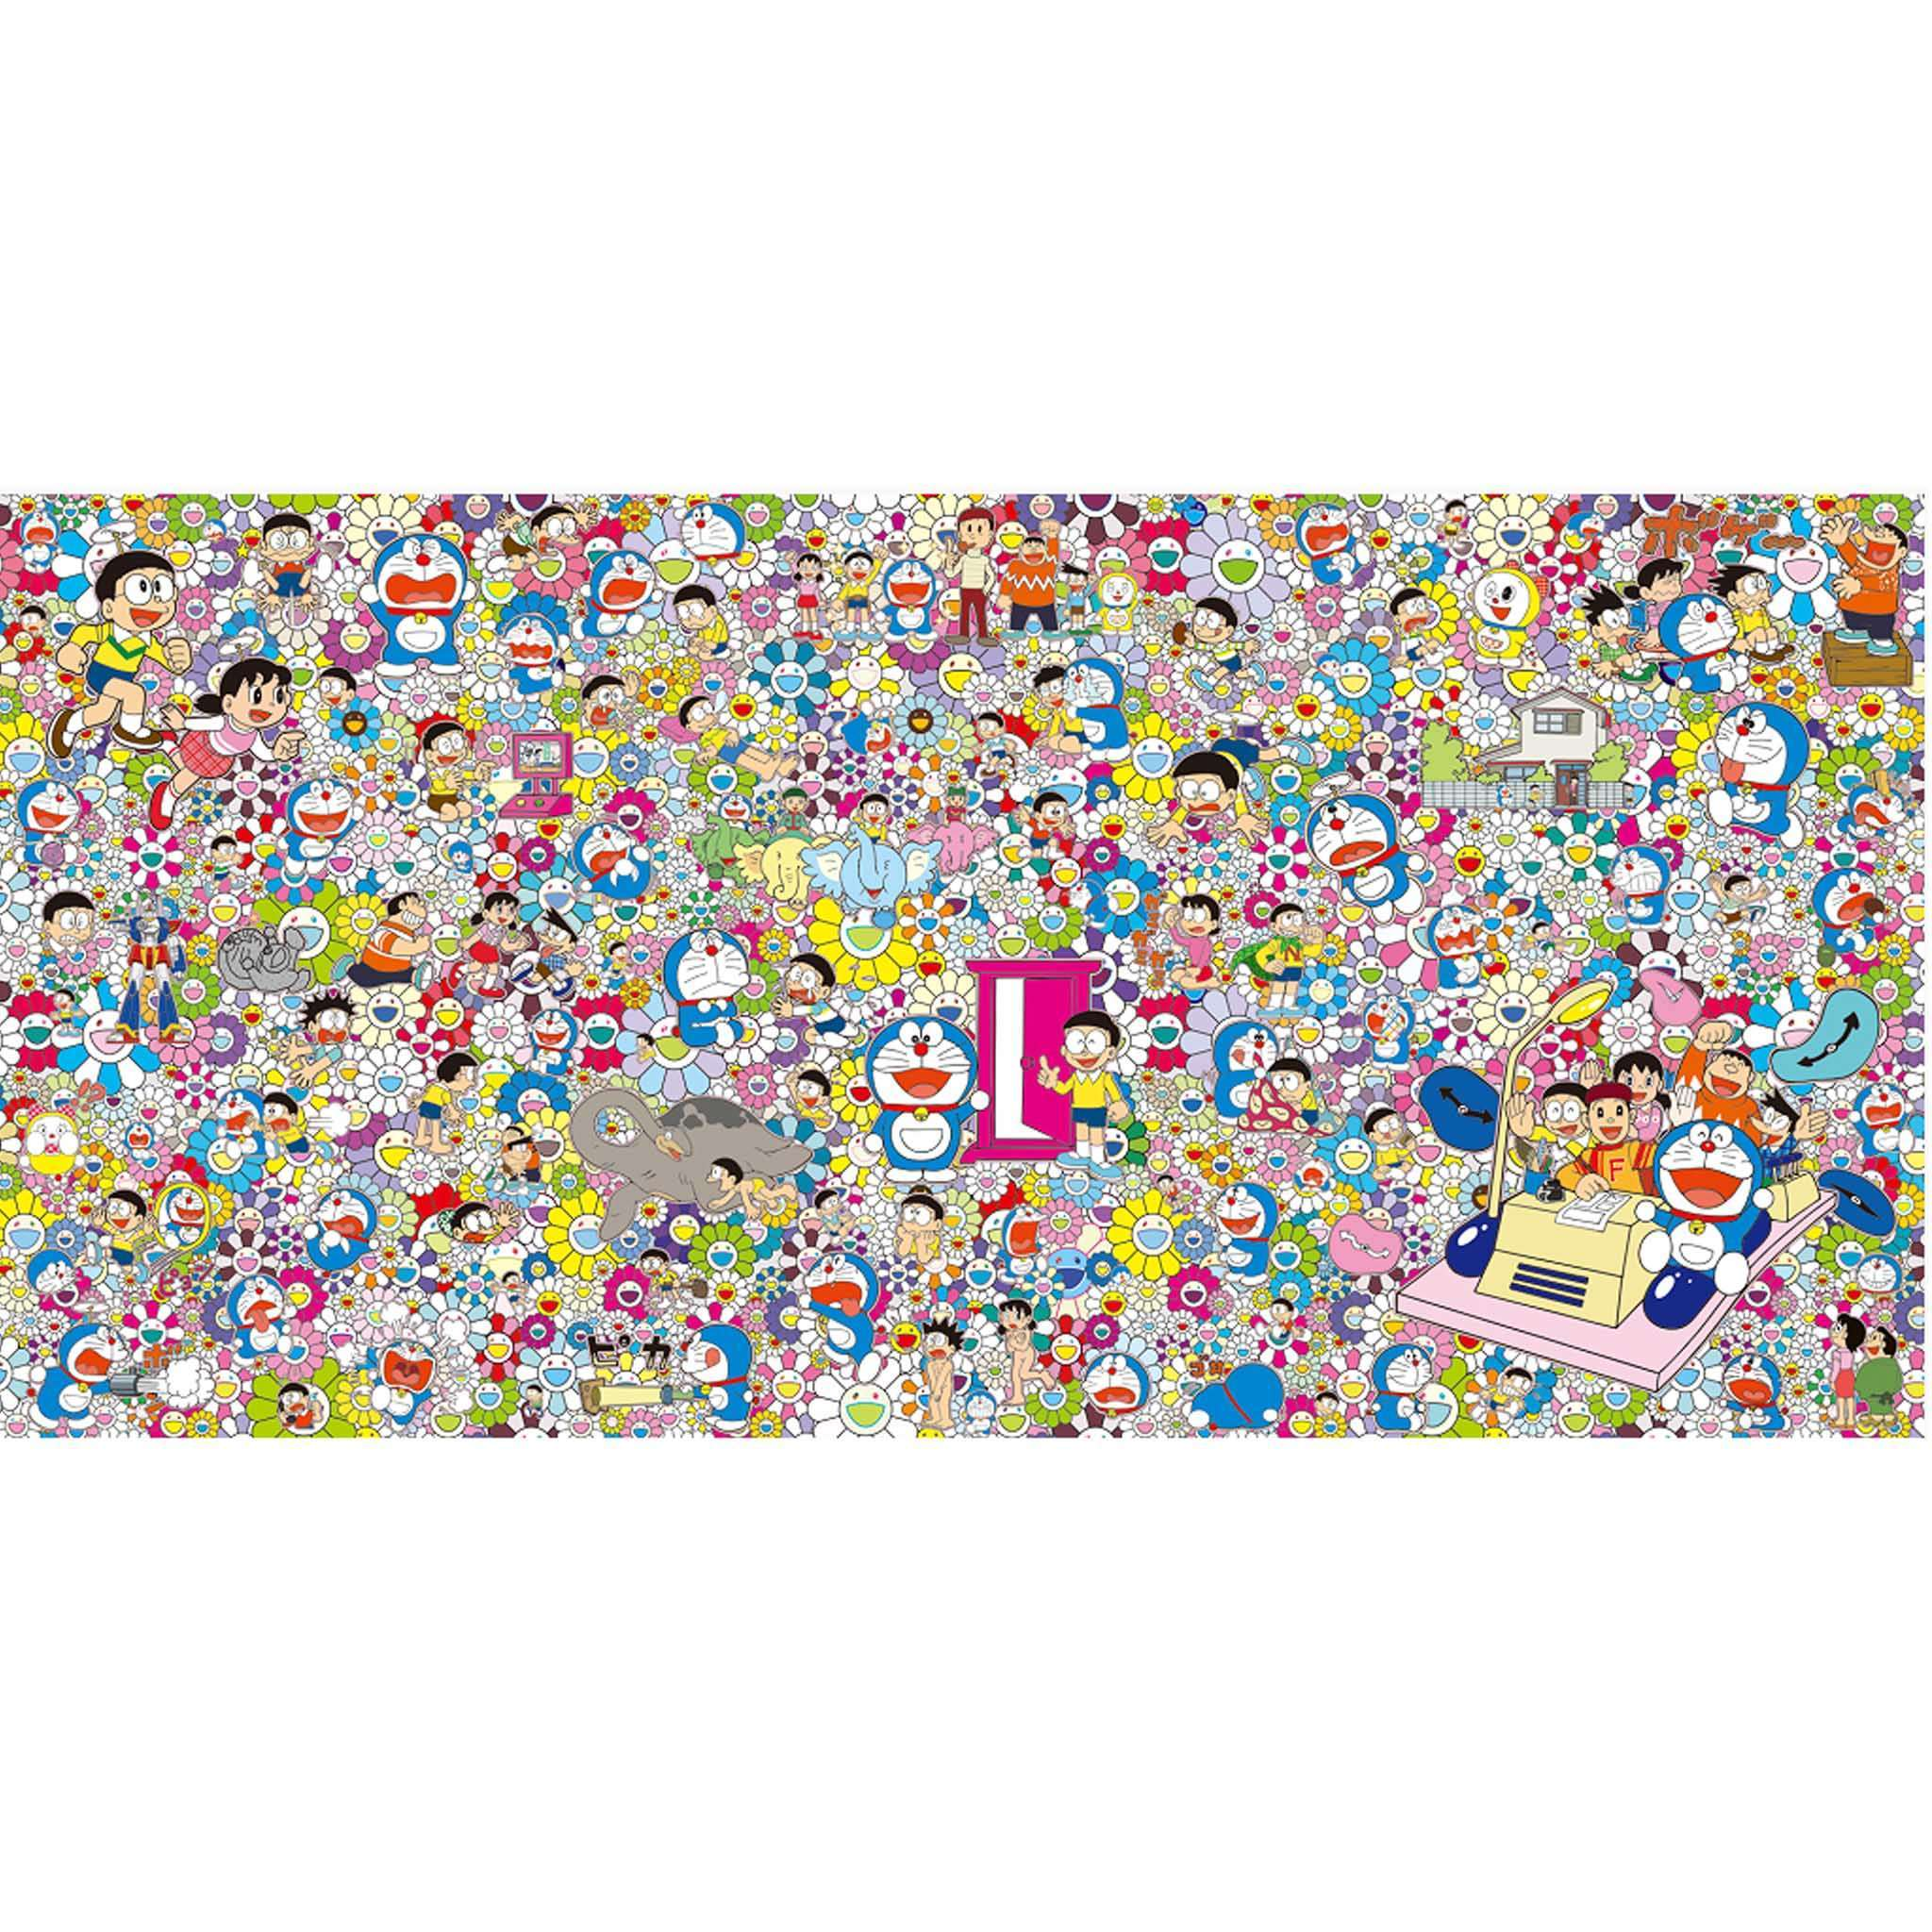 Takashi Murakami, Wouldn't It Be Nice if we Could Do Such a Thing, 2017 | Lougher Contemporary